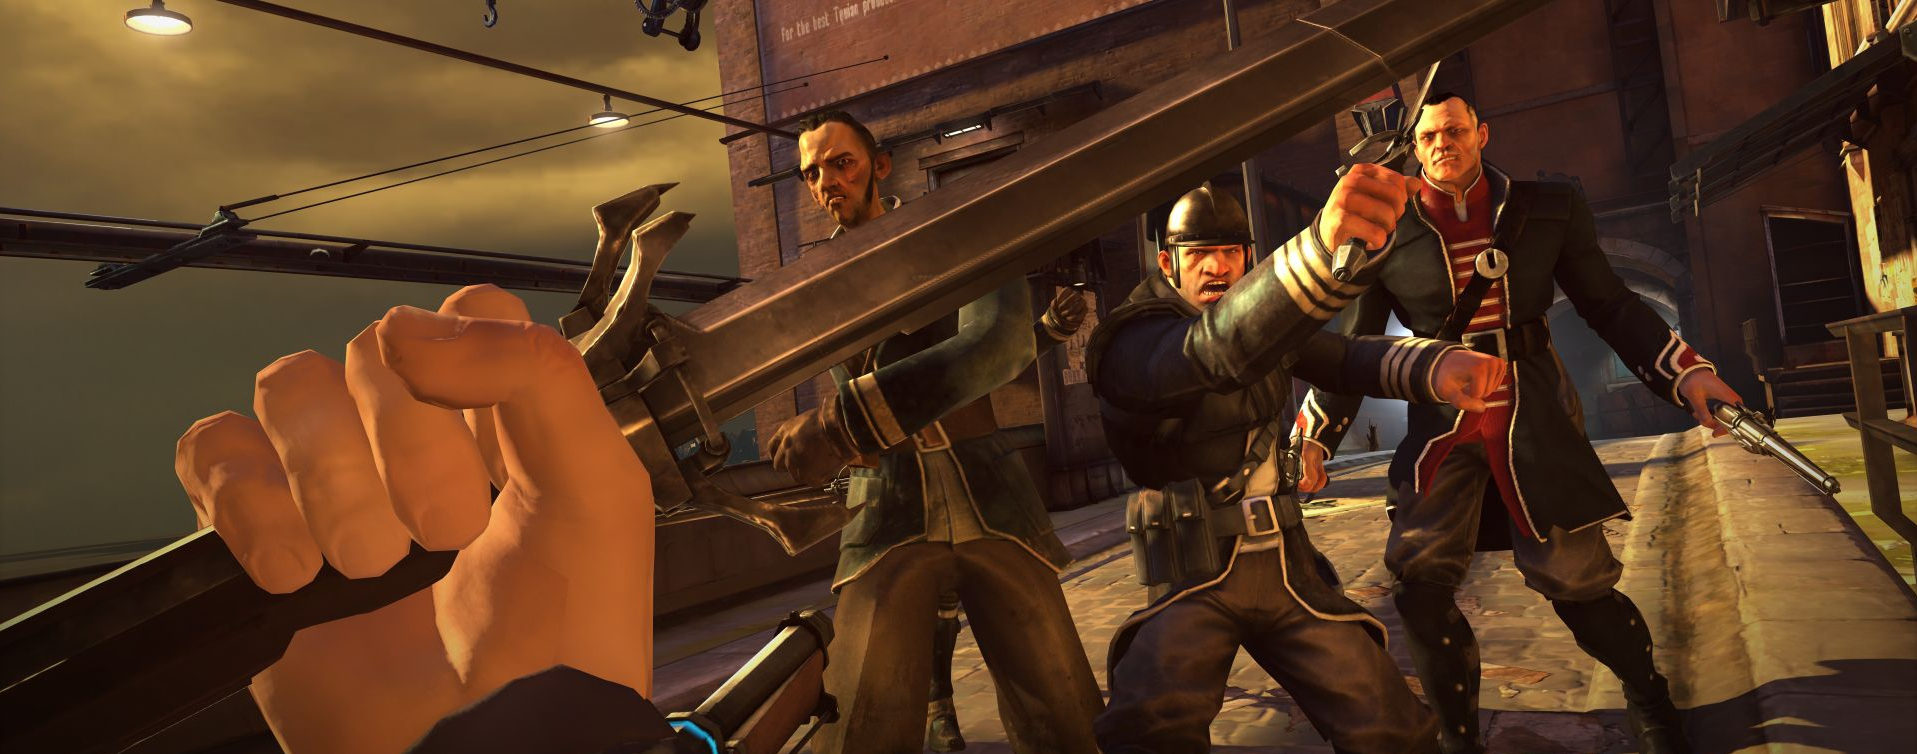 Dishonored: system requirements and description 47